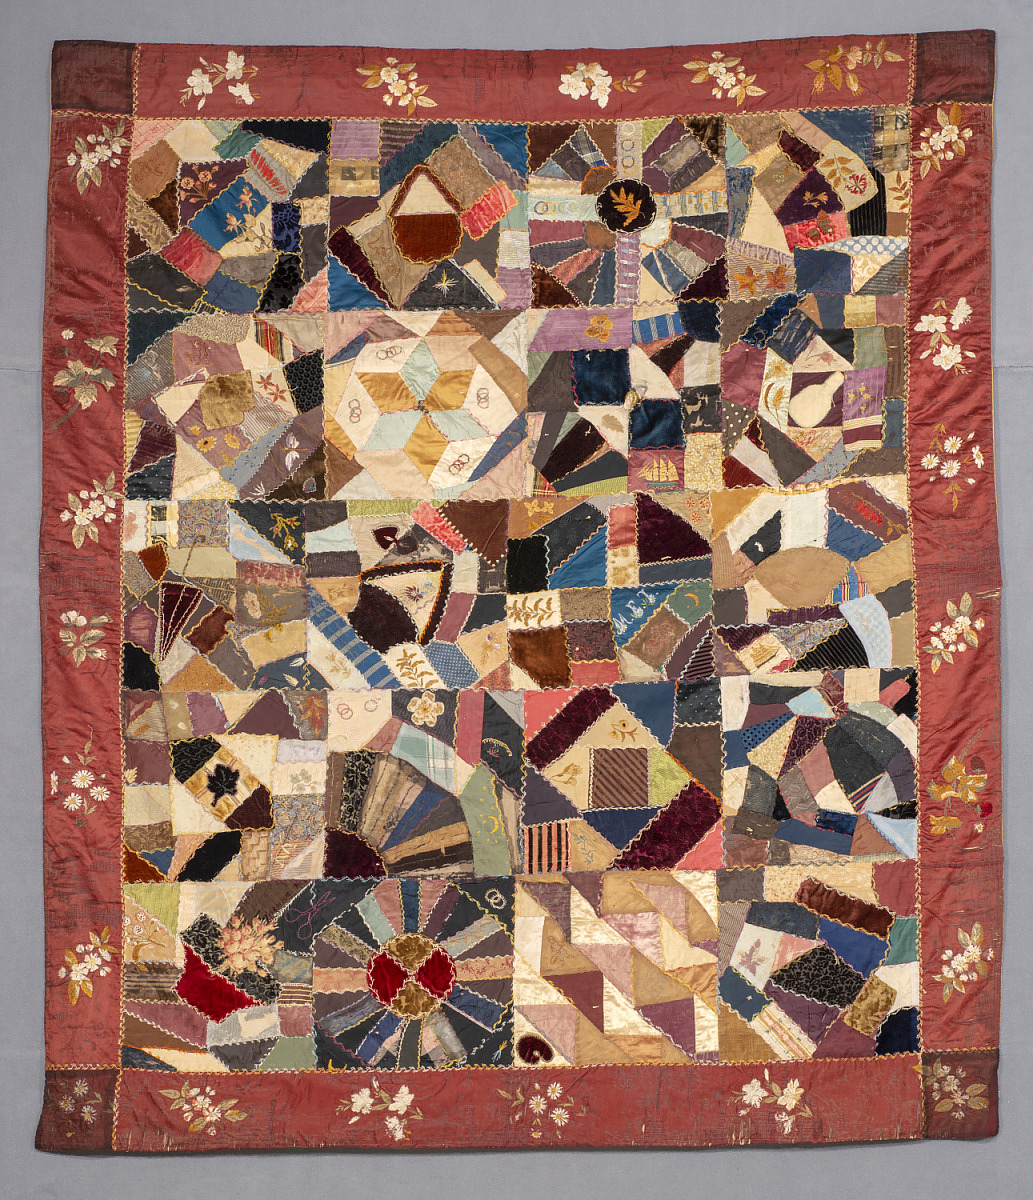 Picture of Friendship Quilt Smithsonian Anacostia Community Museum